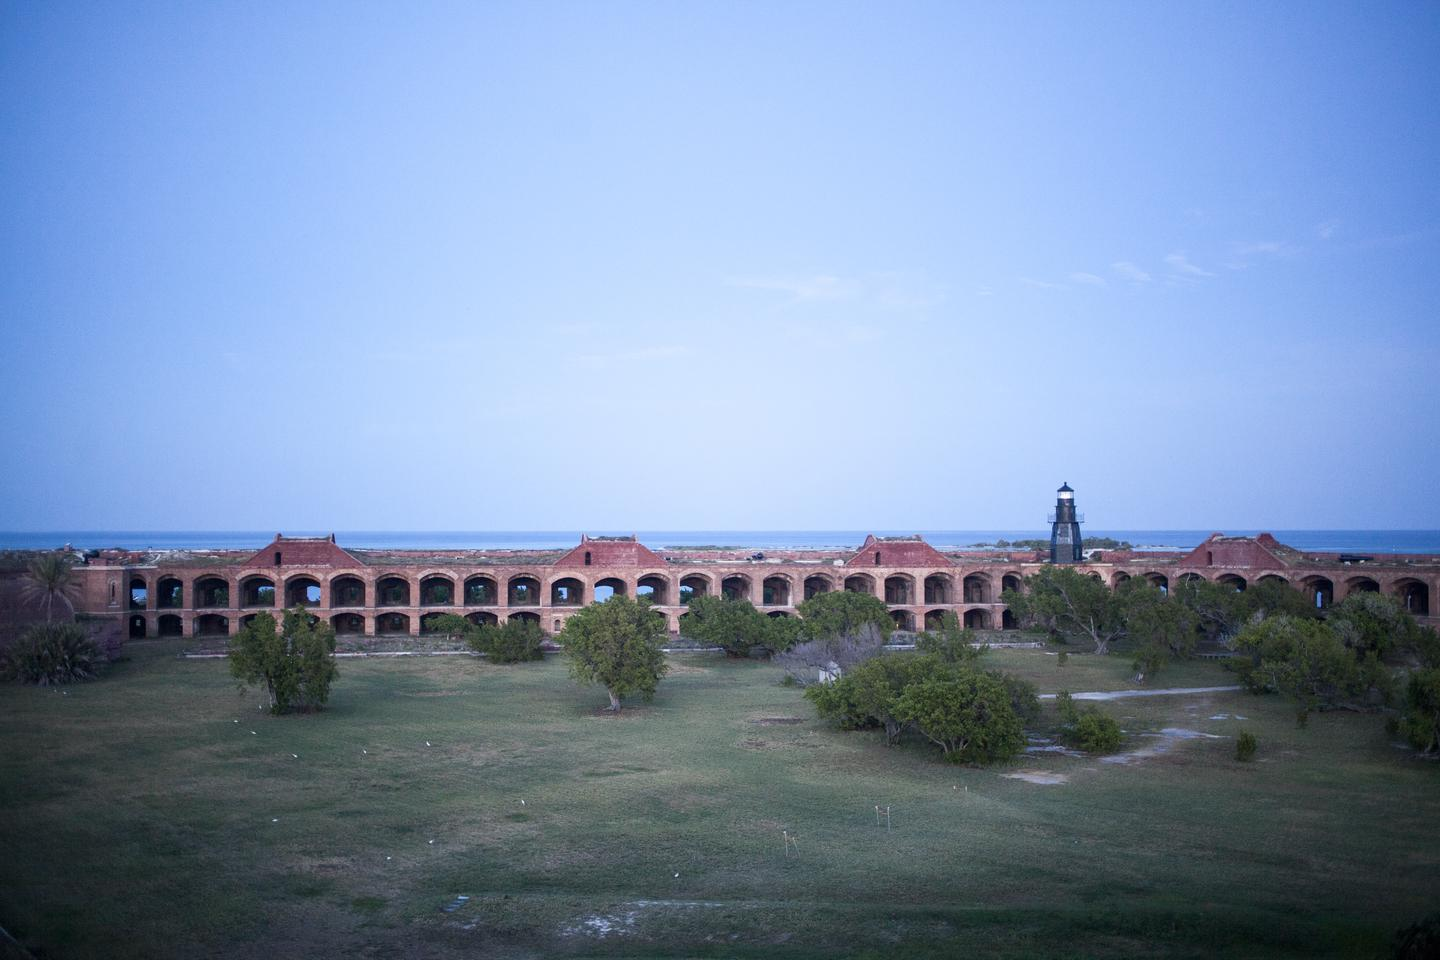 Inside Fort JeffersonGarden Key is the second largest island in the Dry Tortugas, about 14 acres in size, and has had the most human impact. Located on Garden Key is historic Fort Jefferson, one of the nation's largest 19th century forts and a central cultural feature of Dry